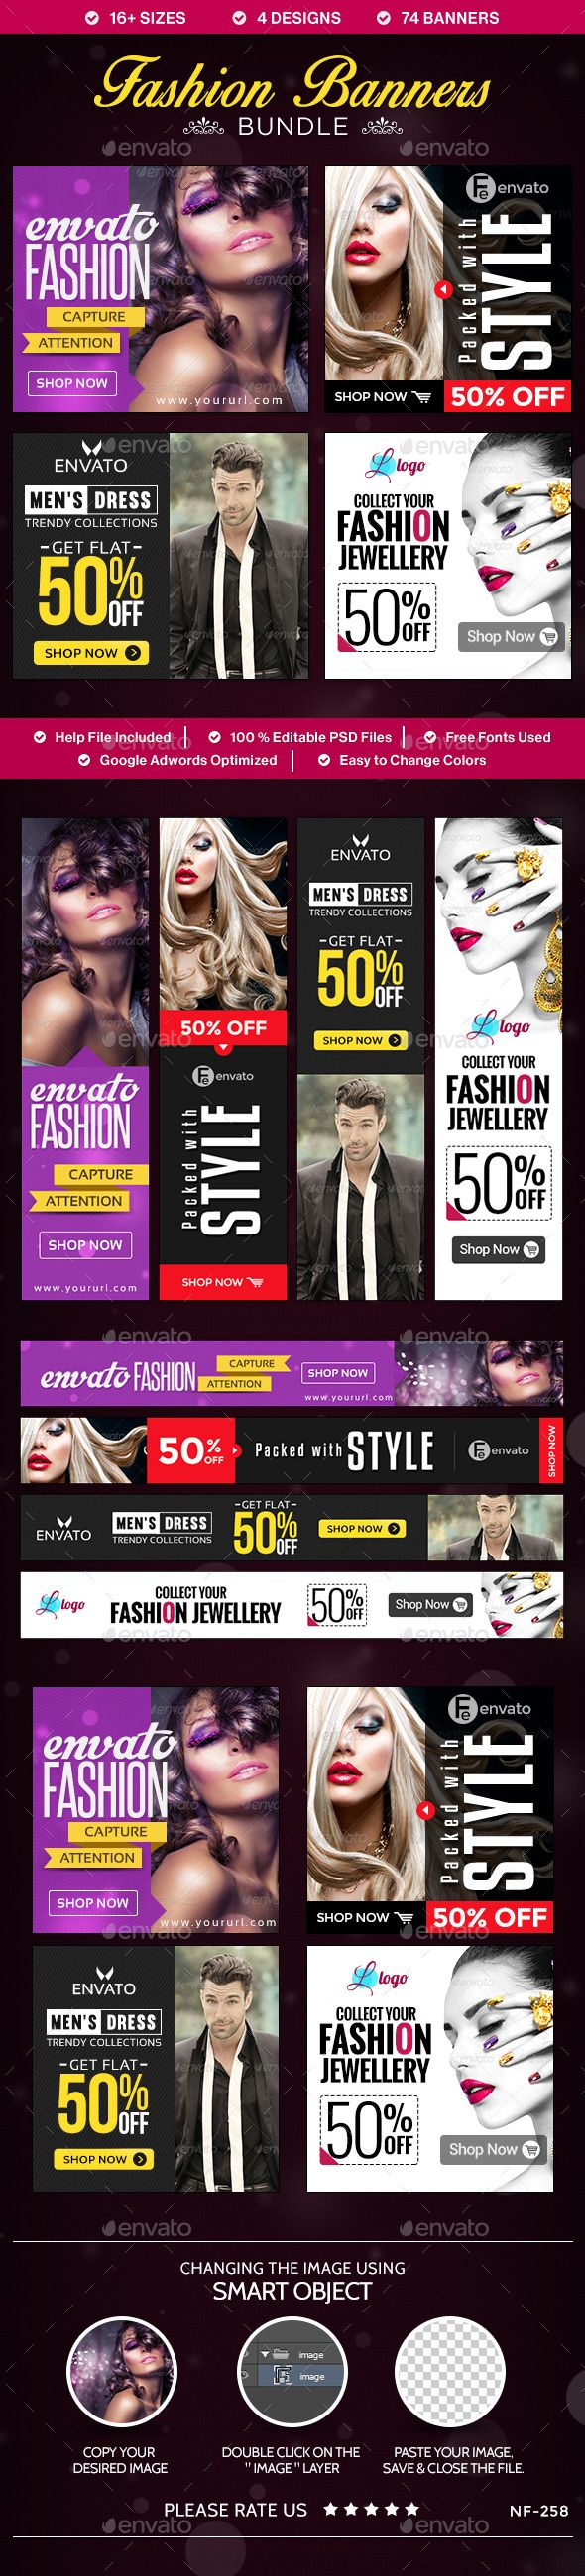 Fashion Banners Bundle - 4 Sets Download: http://graphicriver.net/item/fashion-banners-bundle-4-sets/10496419?ref=ksioks